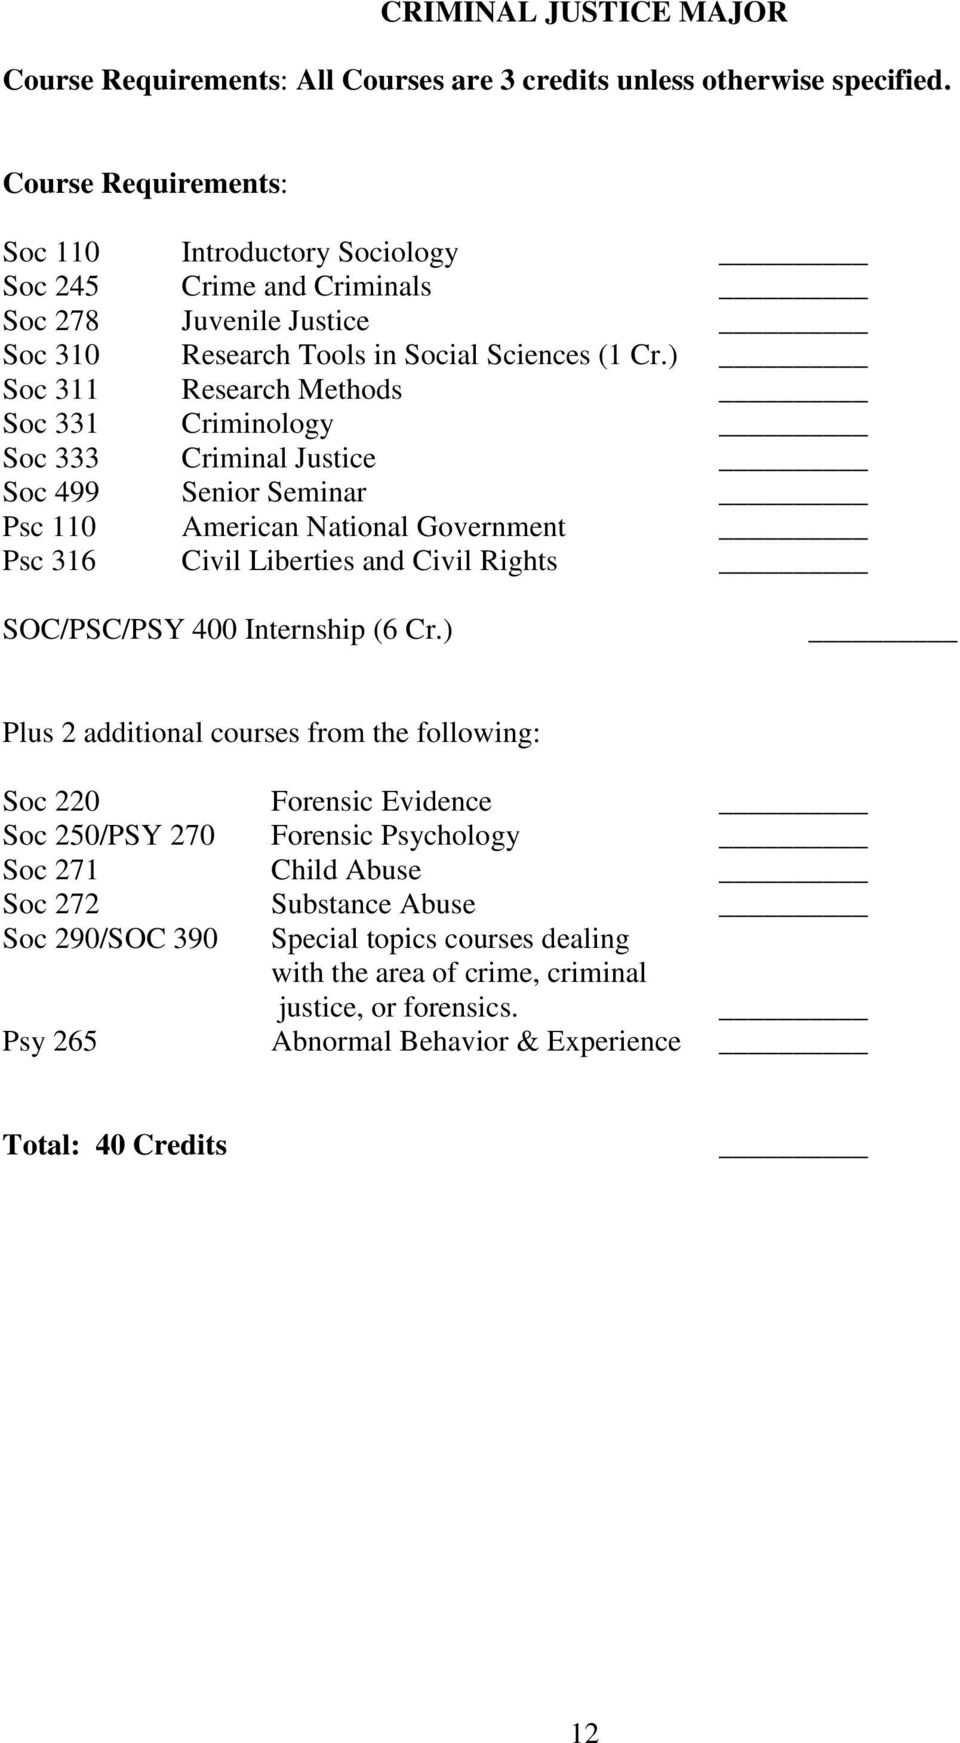 ) Soc 311 Research Methods Soc 331 Criminology Soc 333 Criminal Justice Soc 499 Senior Seminar Psc 110 American National Government Psc 316 Civil Liberties and Civil Rights SOC/PSC/PSY 400